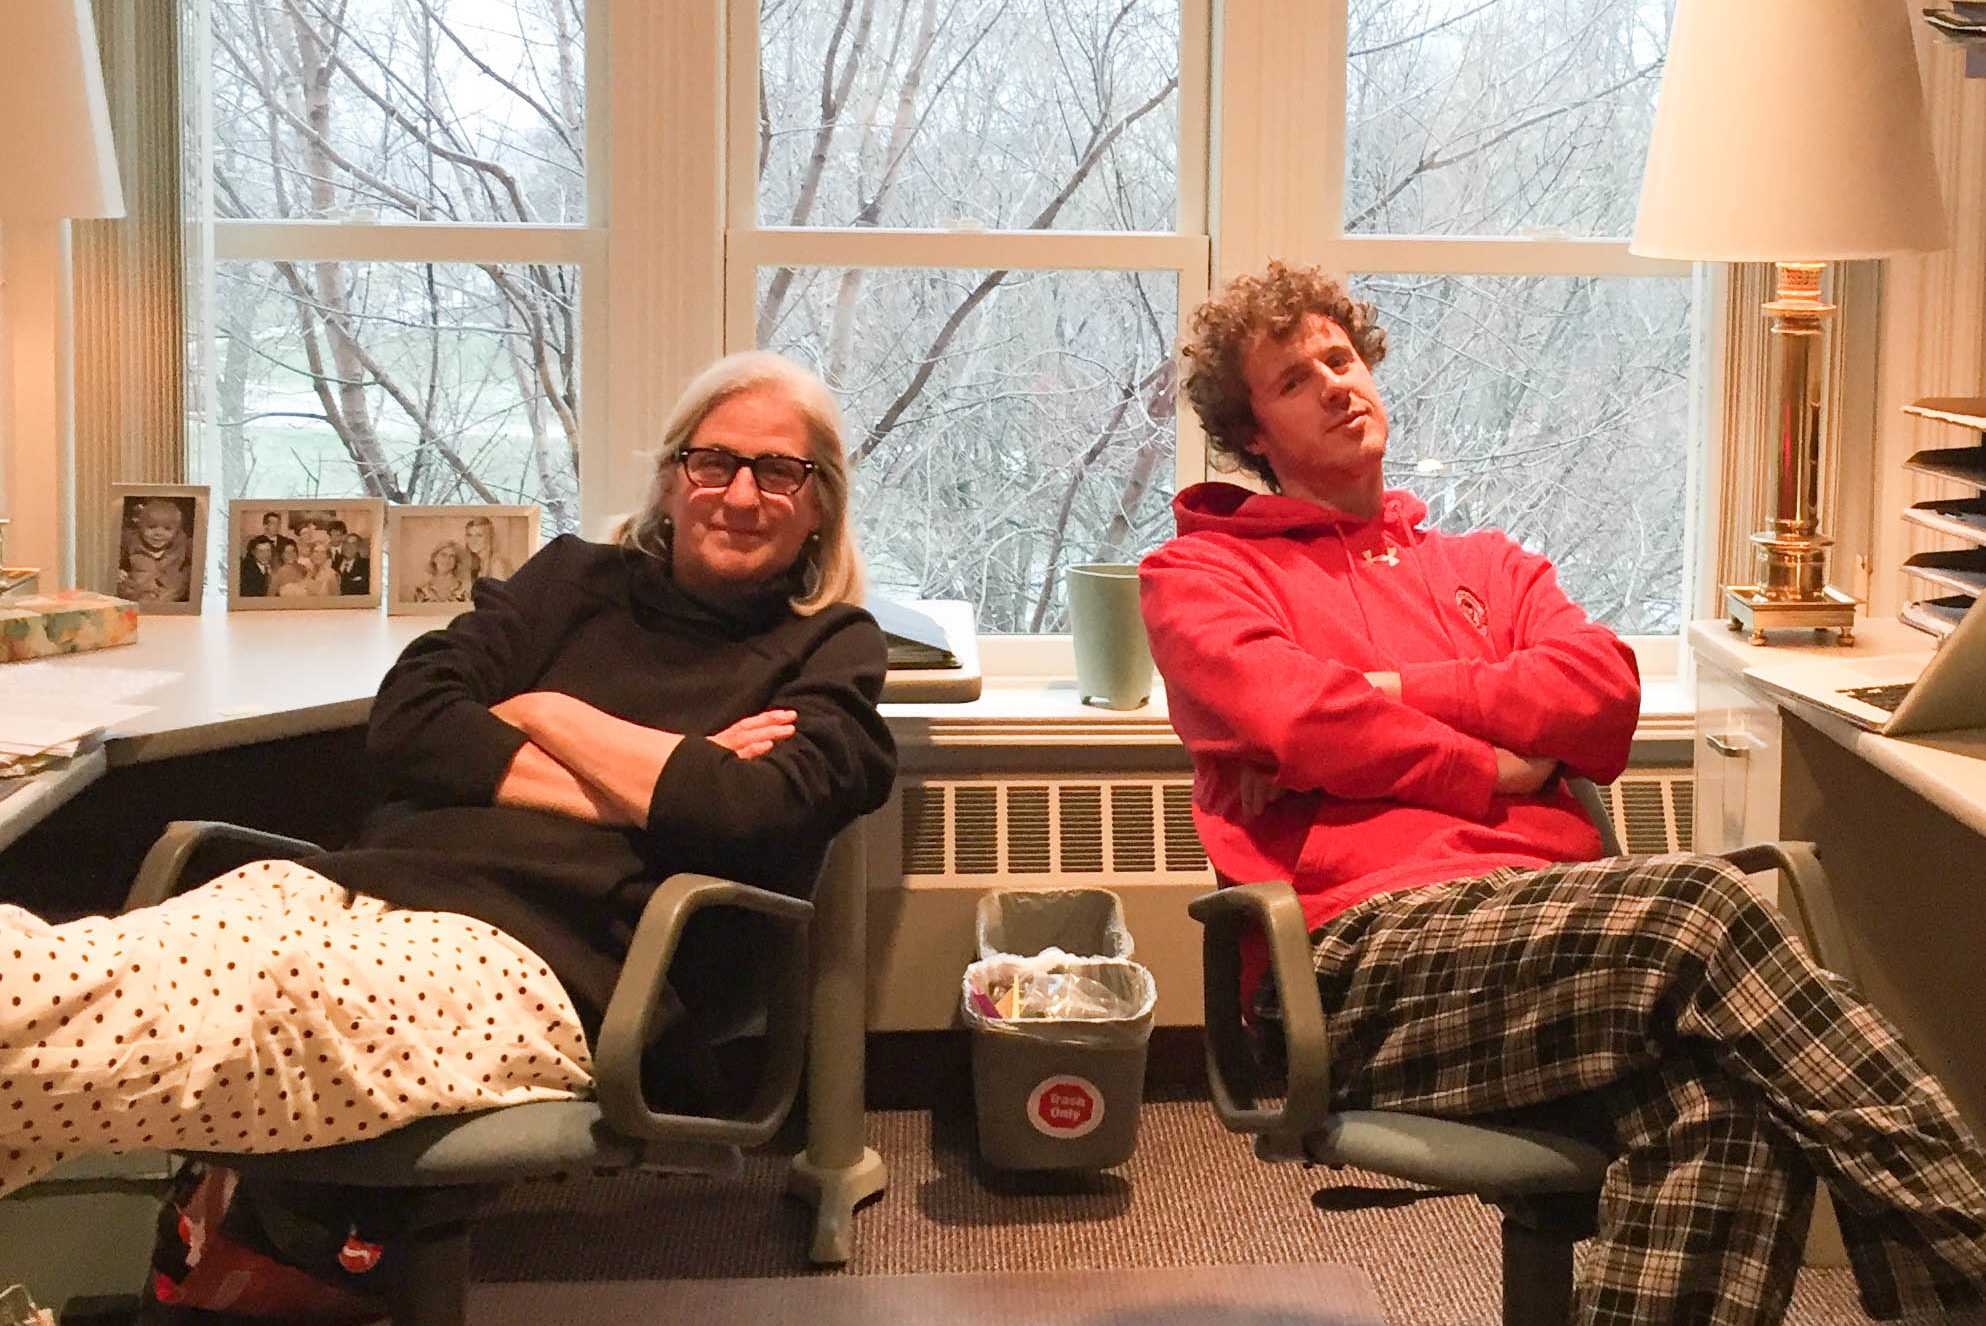 Jan Beebe and Hank Hietala '17 relax in the English office on pajama day. Photo courtesy of Jane Beebe.